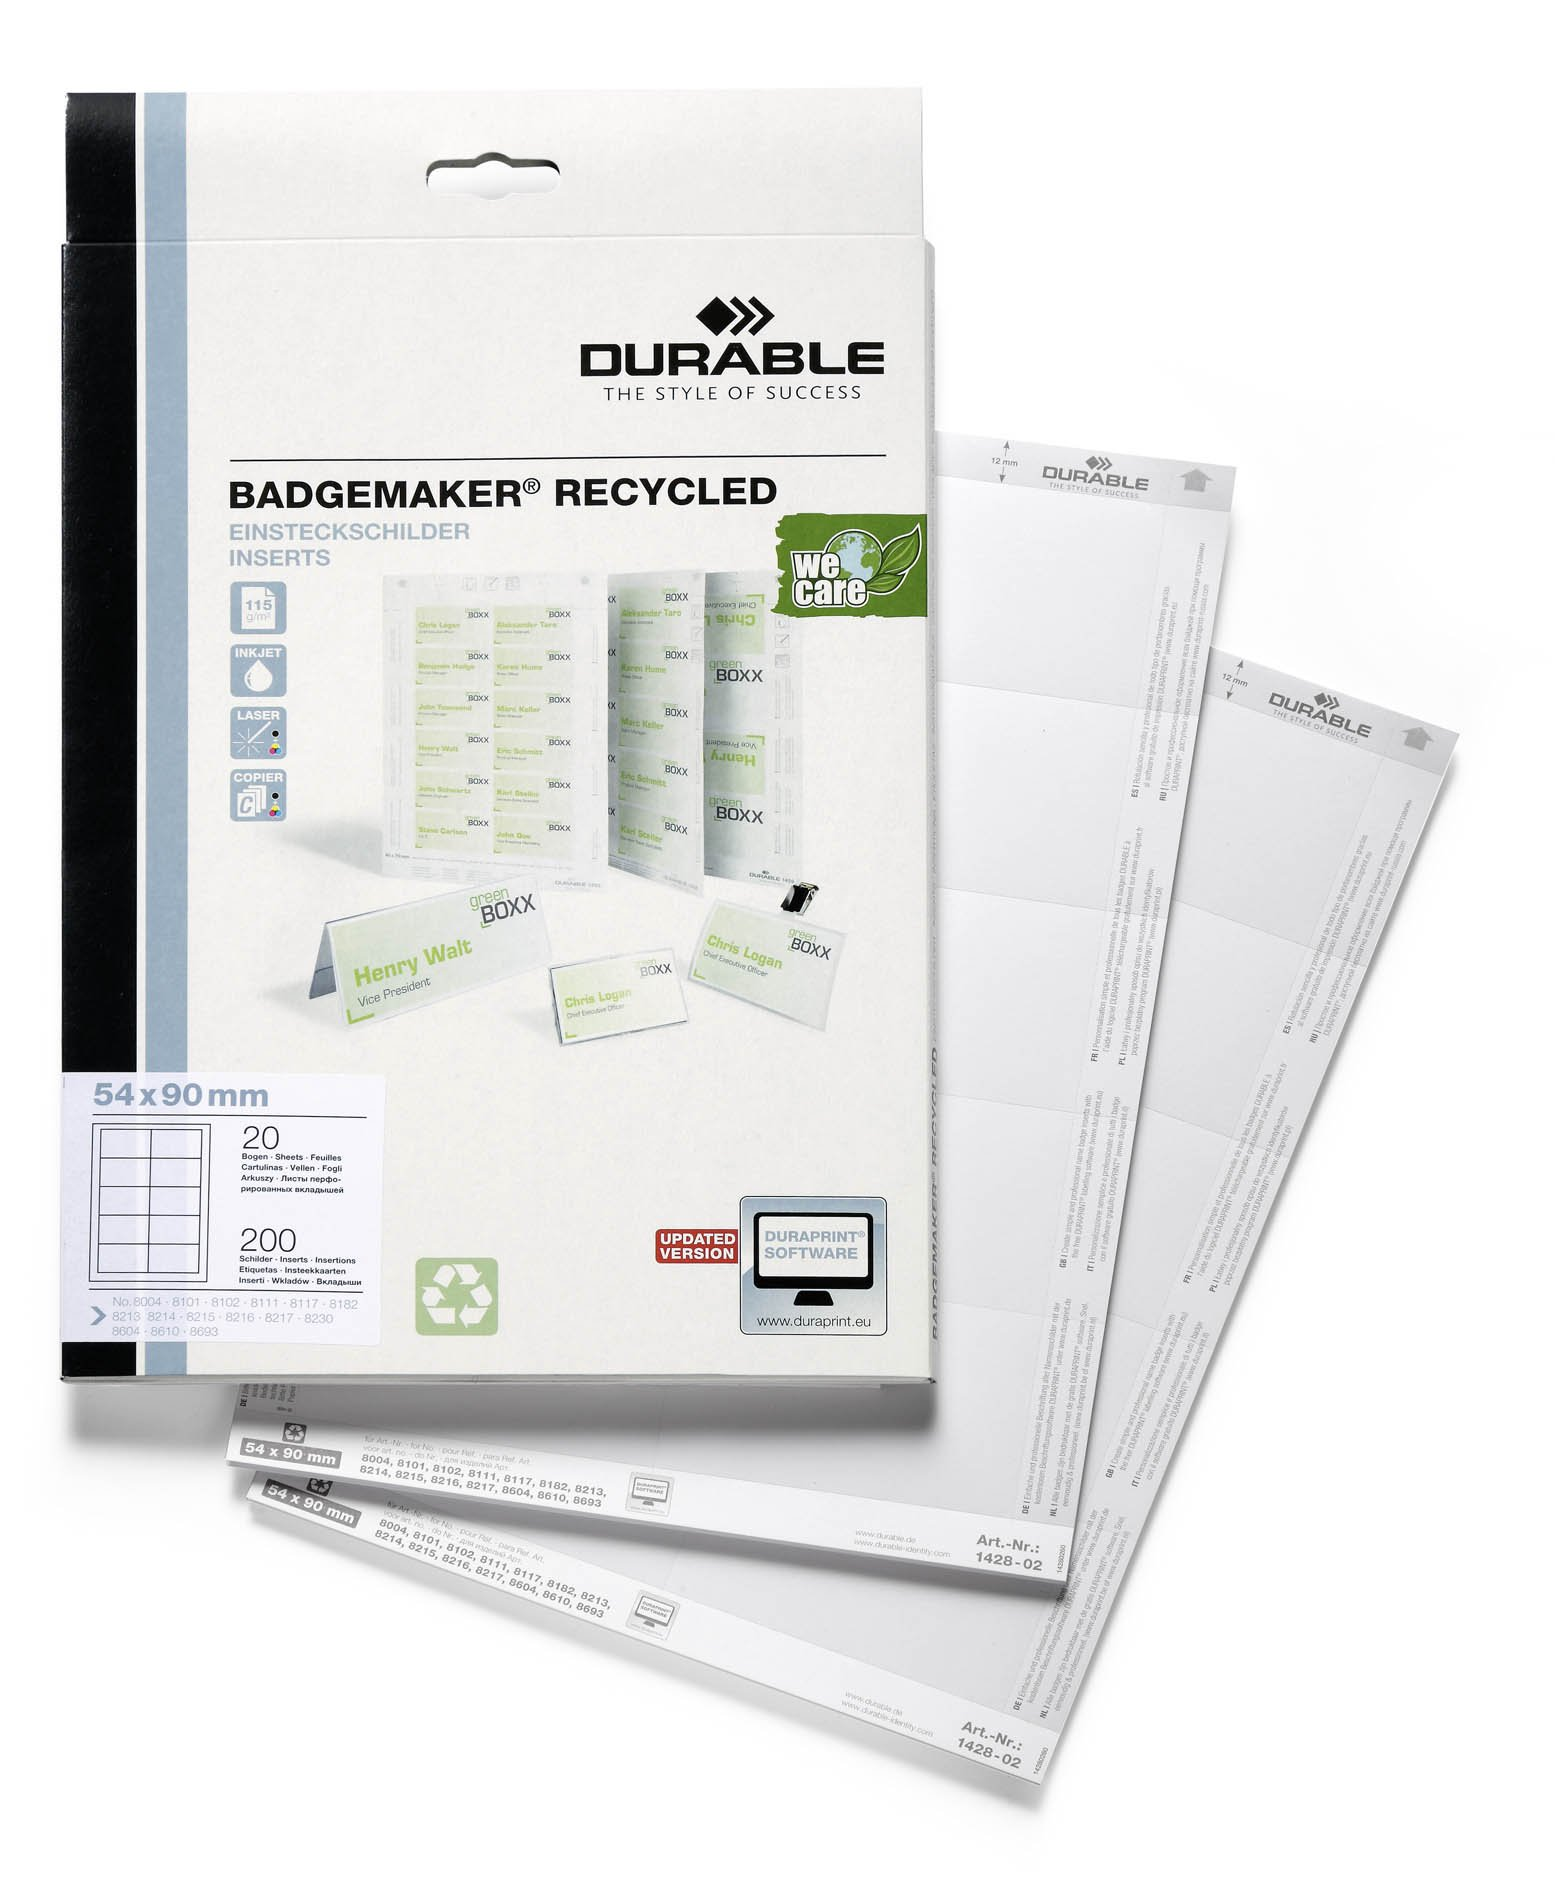 Durable 142802 Badgemaker Recycled Inserts 54 x 90 mm Pack of 200 White by Durable